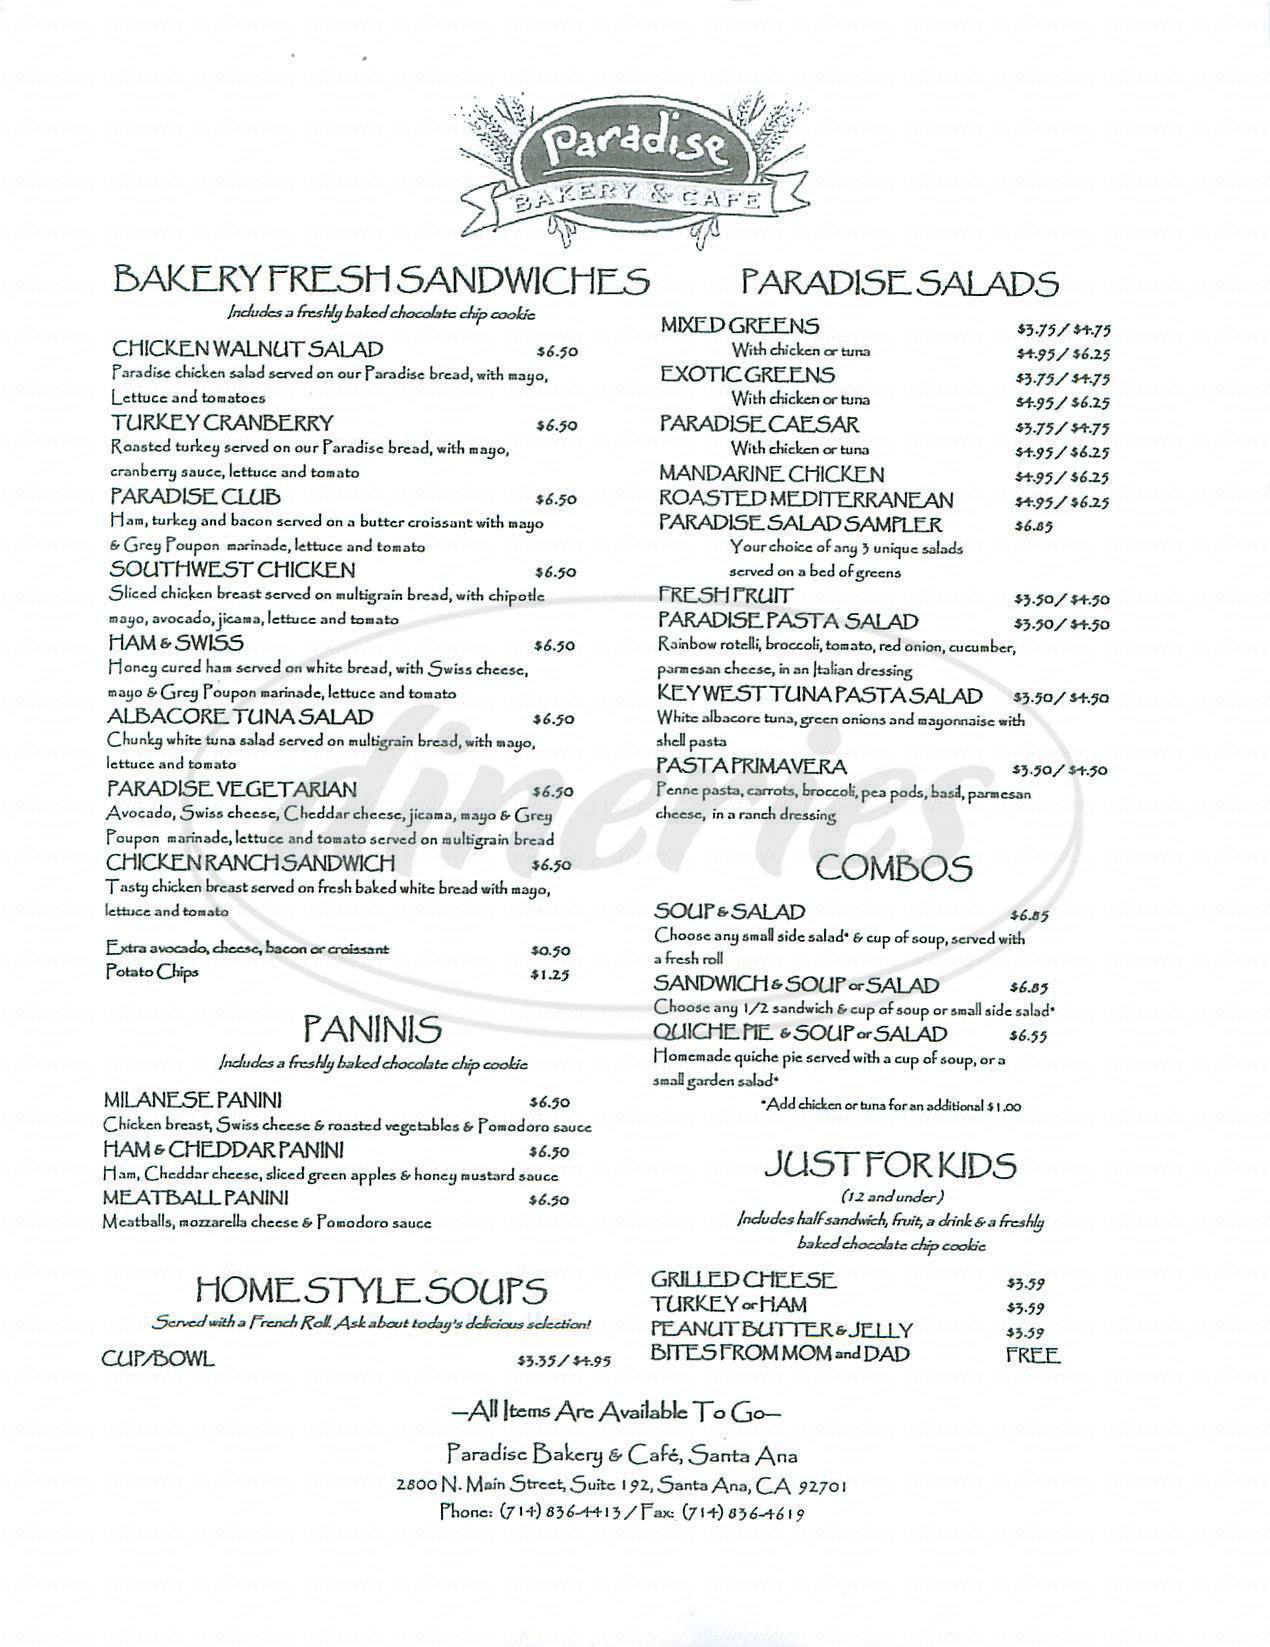 menu for Paradise Bakery & Cafe